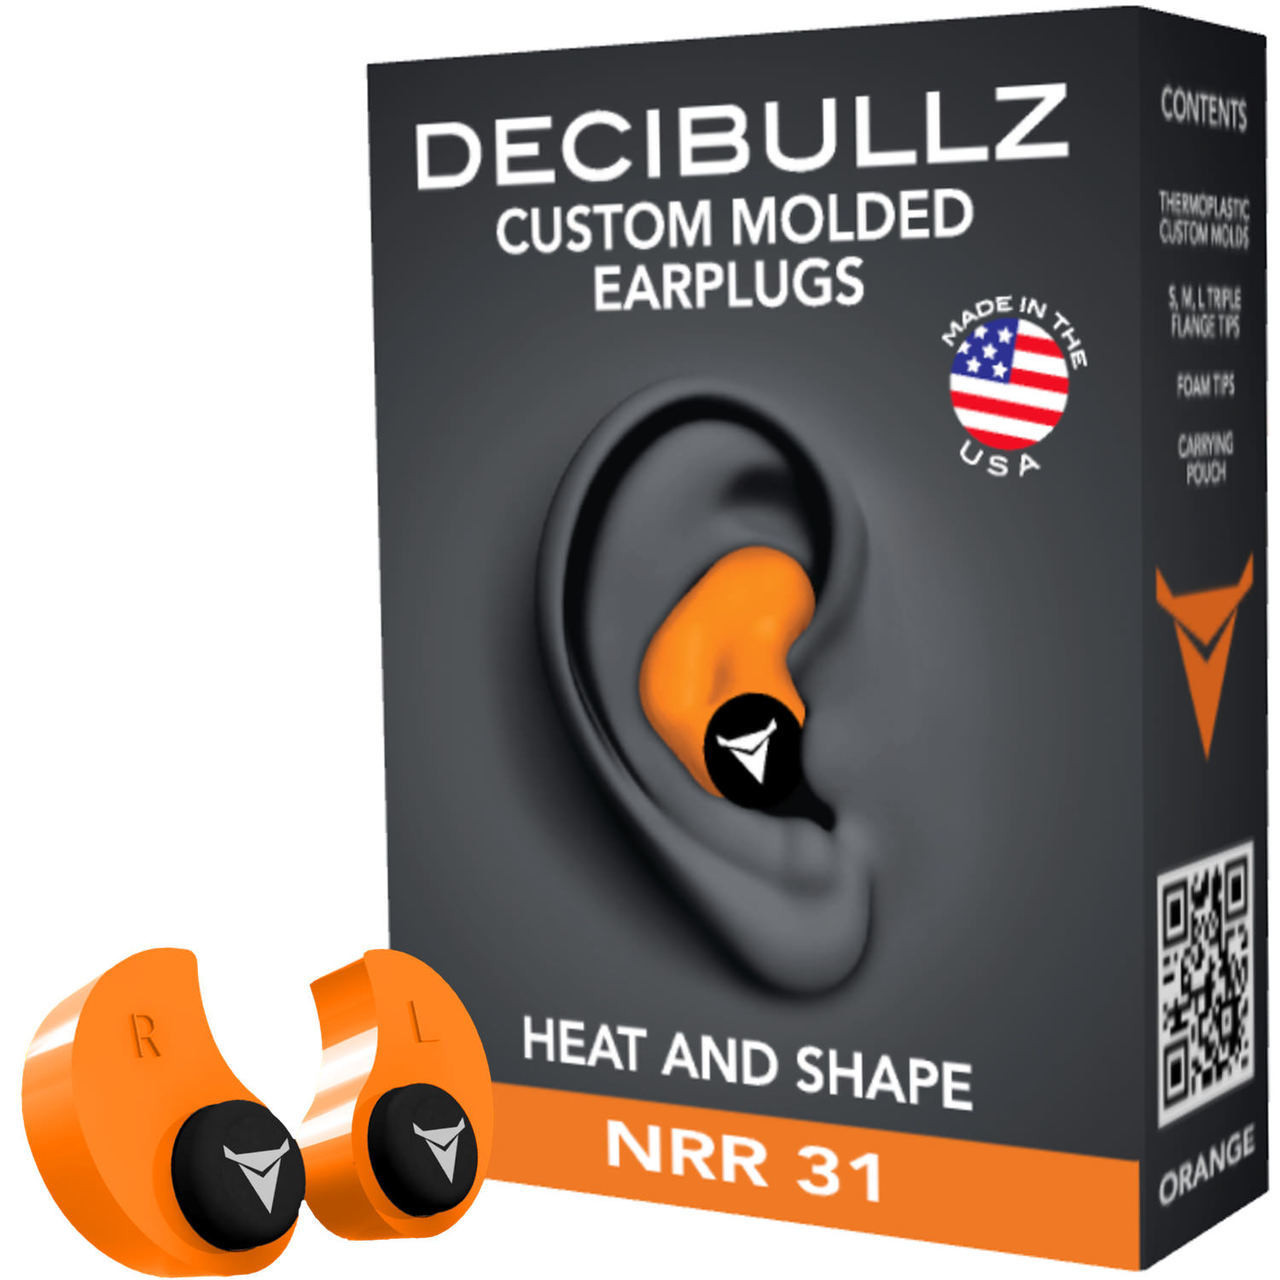 DECIBULLZ Custom Molded Earplug for Surveillance Microphones